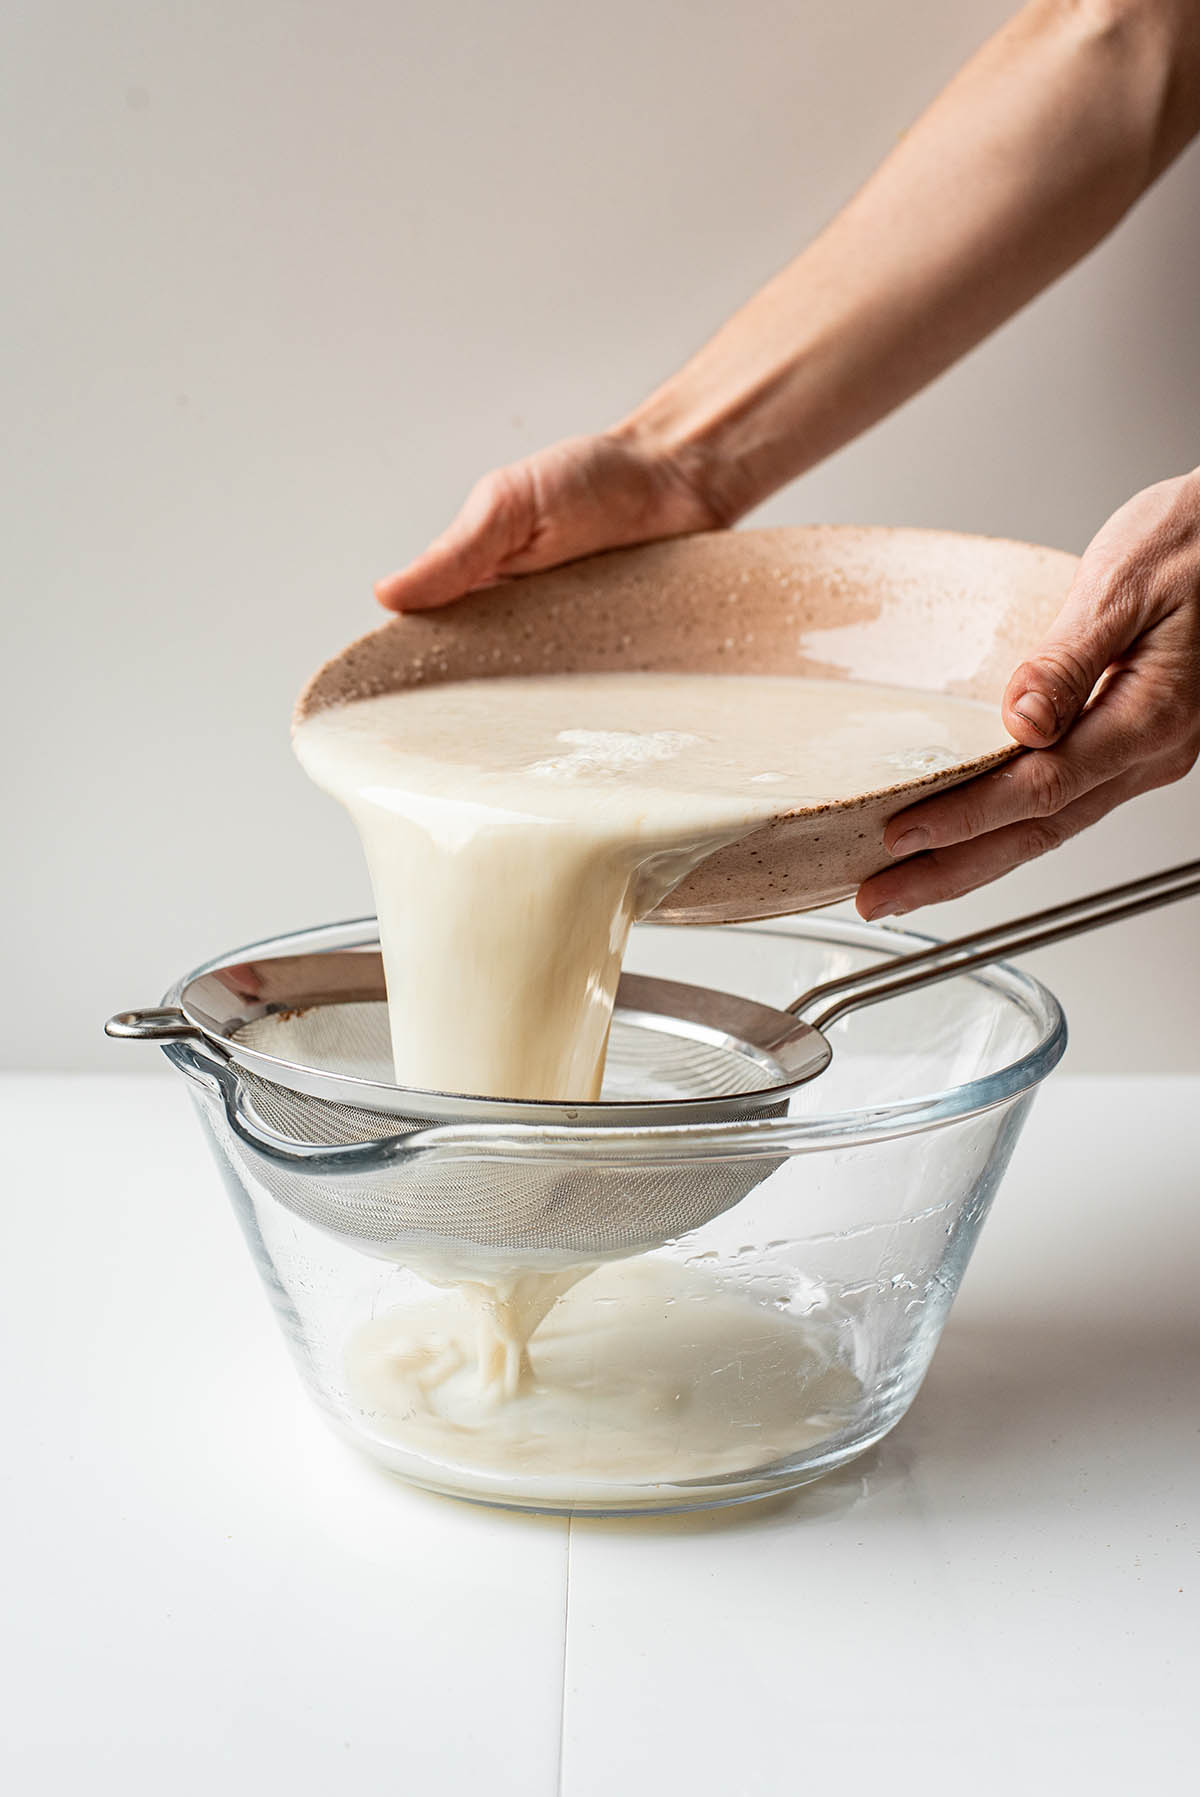 Woman's hands pouring oat milk through a strainer into a bowl.